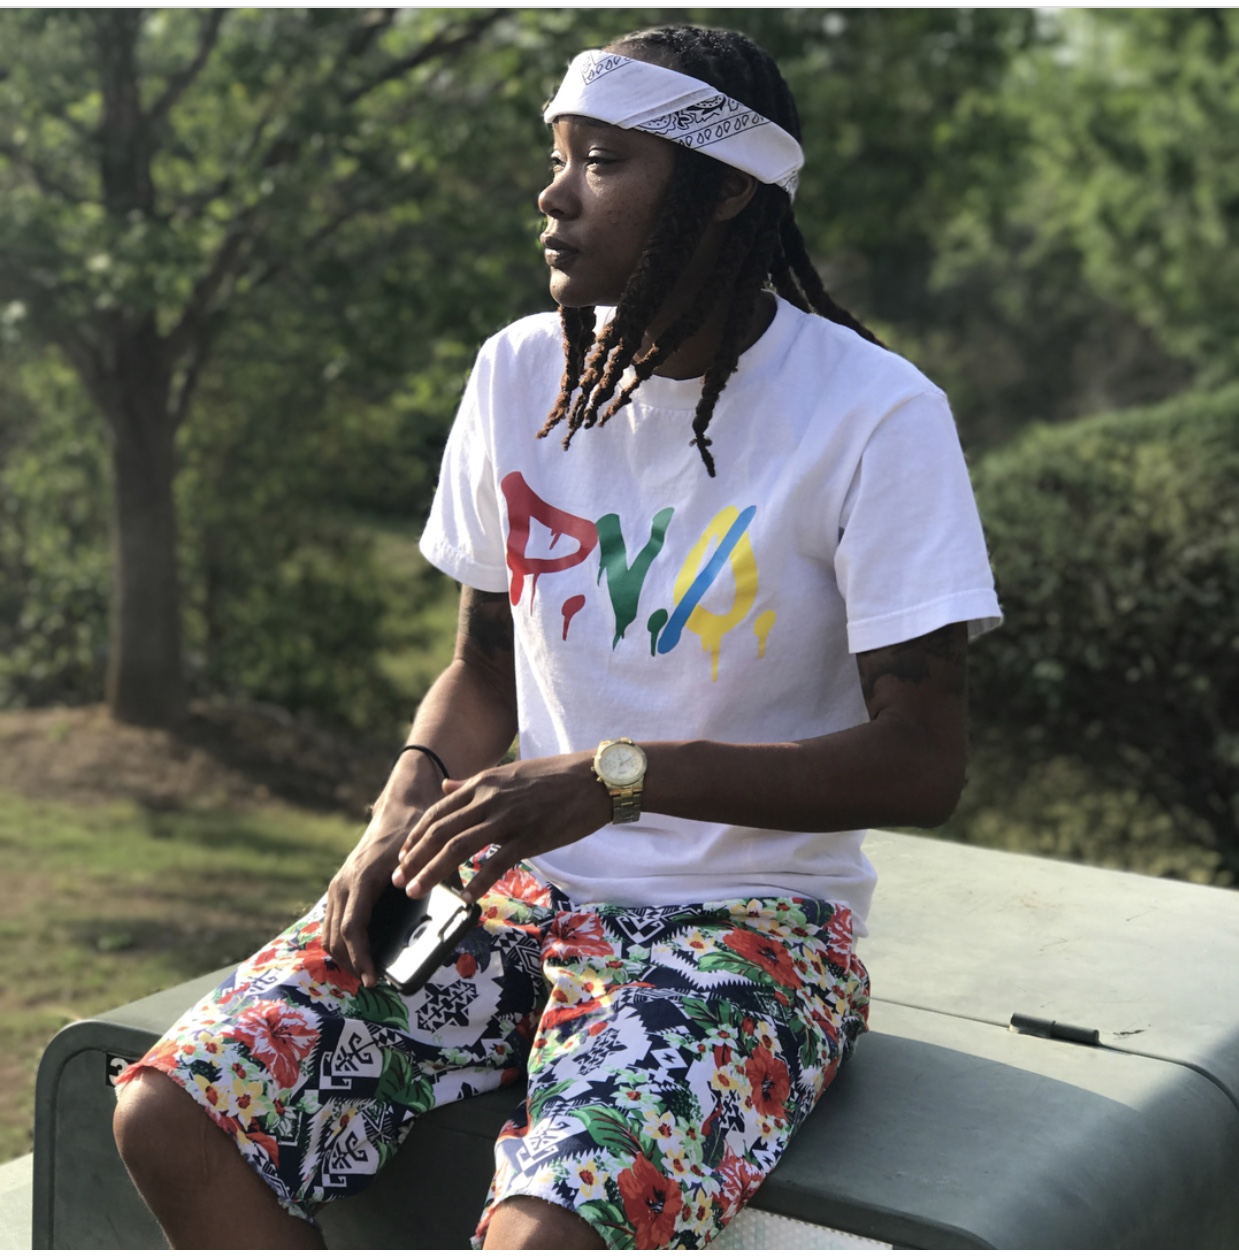 INTRODUCING 'PVØ CLOTHING LLC' ATL's LATEST FASHION WAVE @PVOCLOTHING